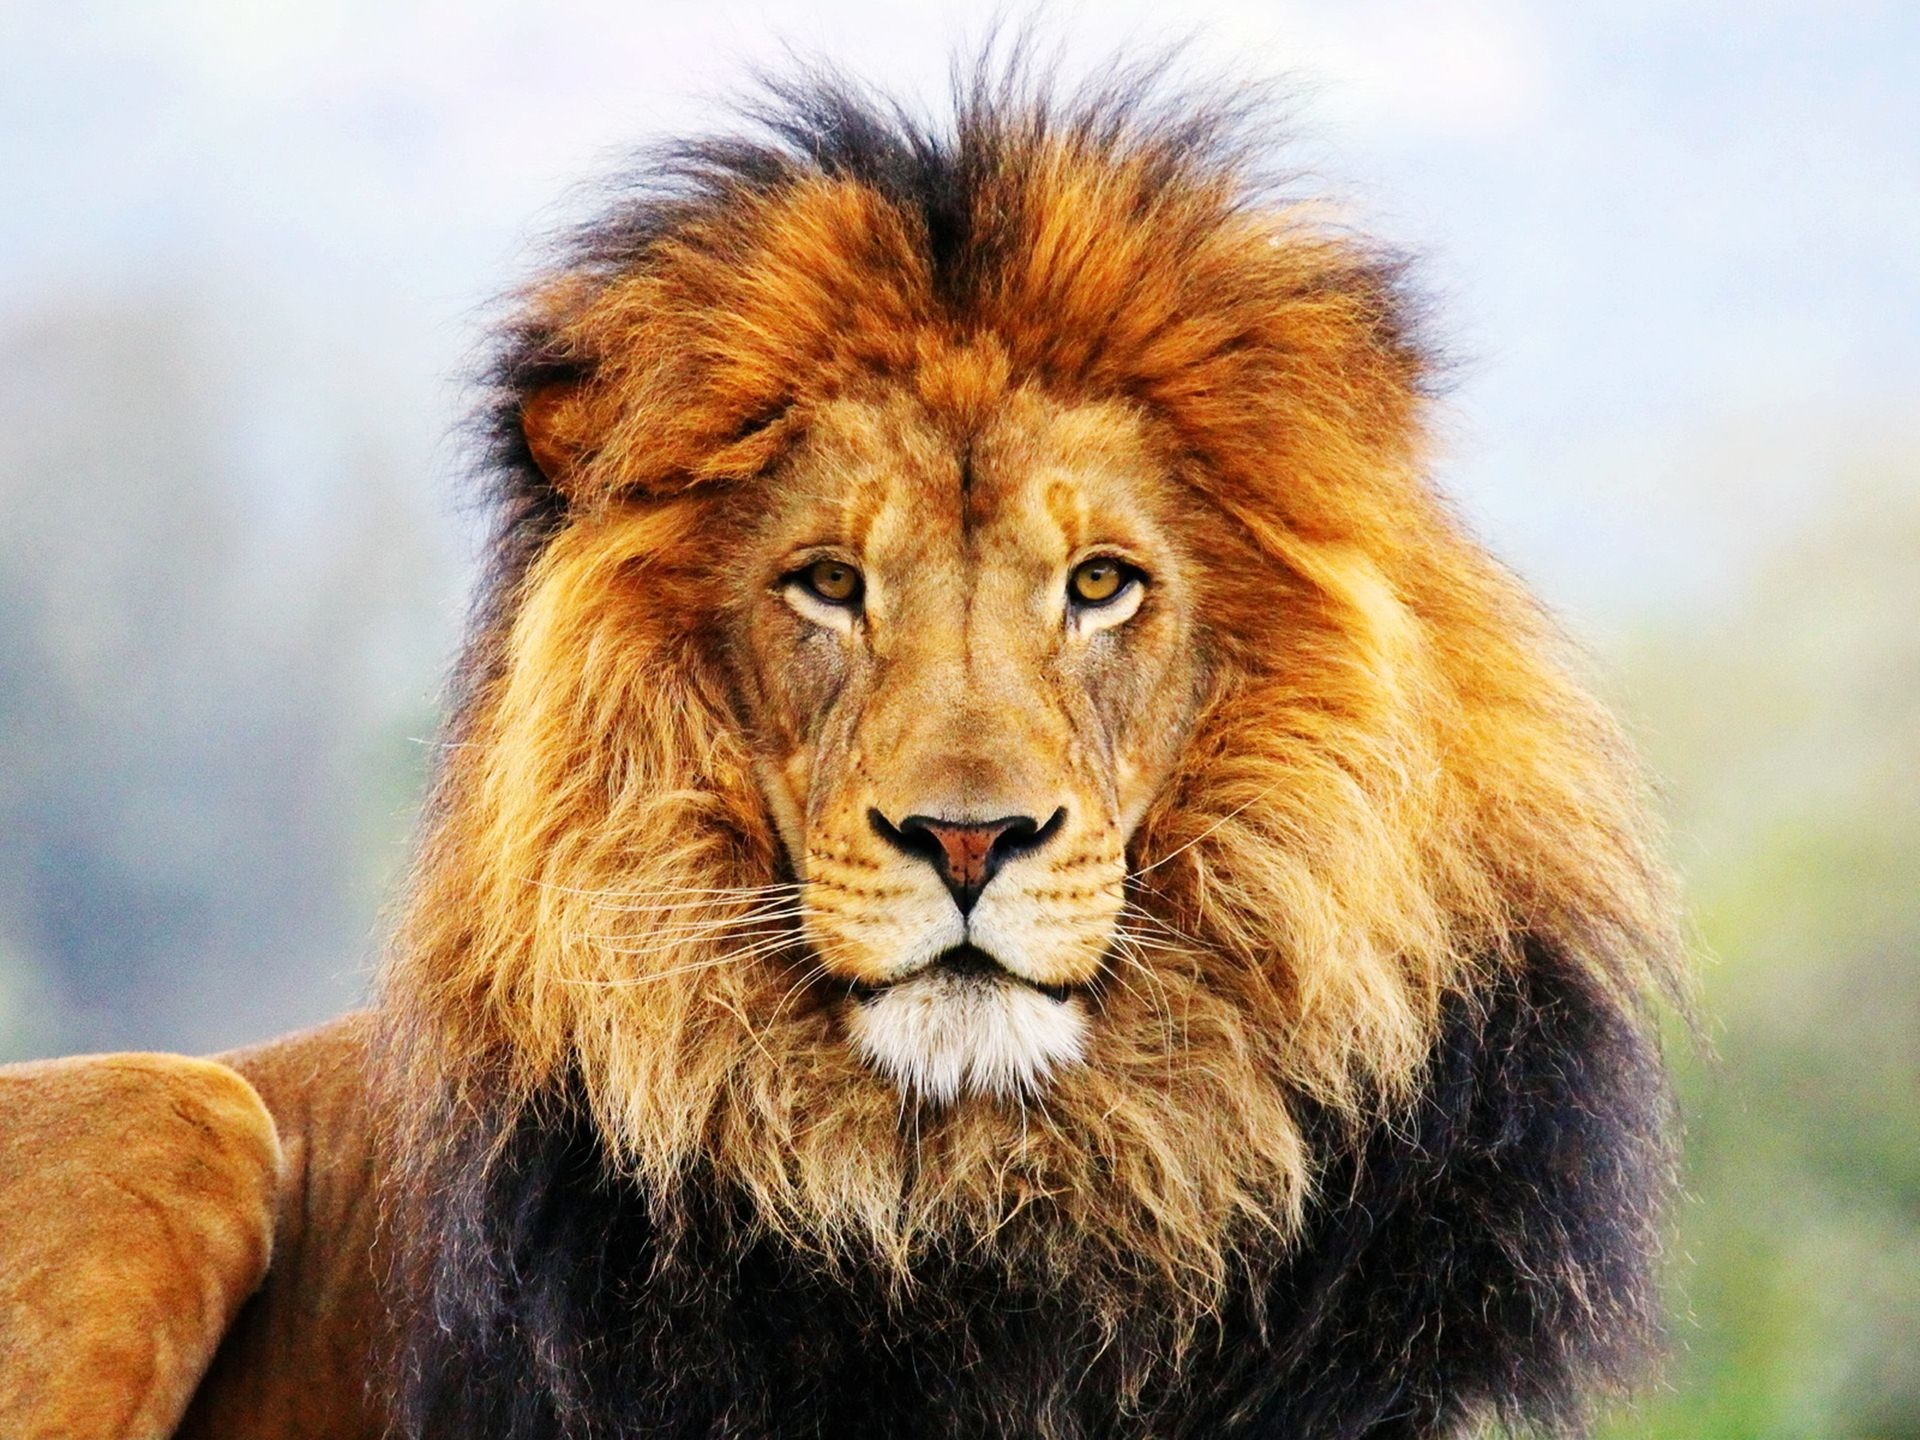 Best 25 Lion Hd Wallpaper Ideas On Pinterest: Roaring Lion Wallpaper (67+ Images